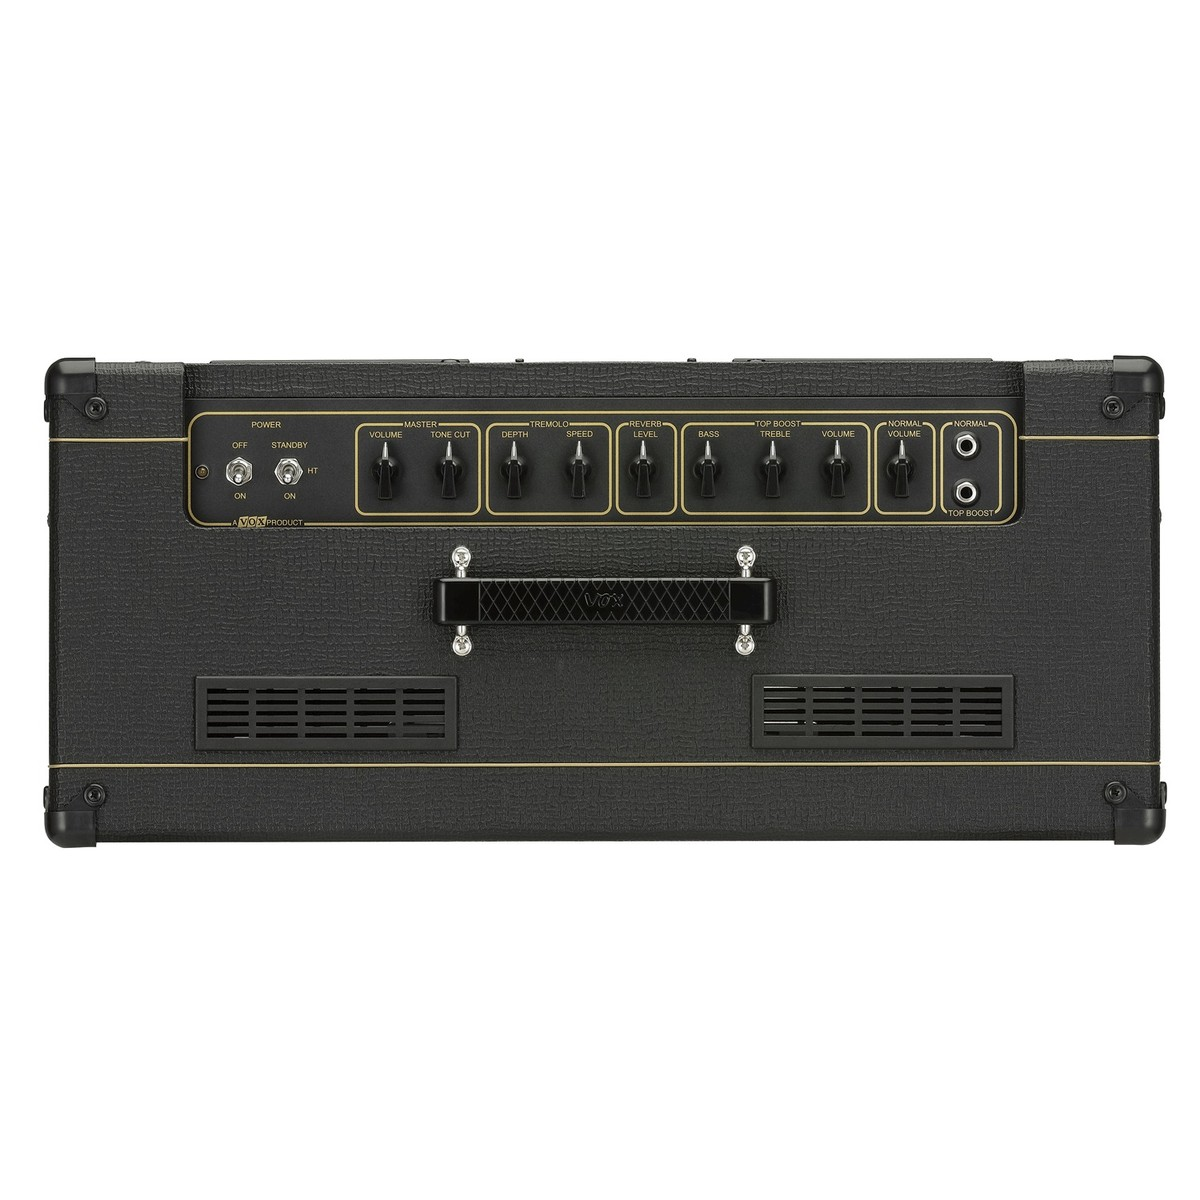 vox ac15 custom amplifier head at gear4music. Black Bedroom Furniture Sets. Home Design Ideas